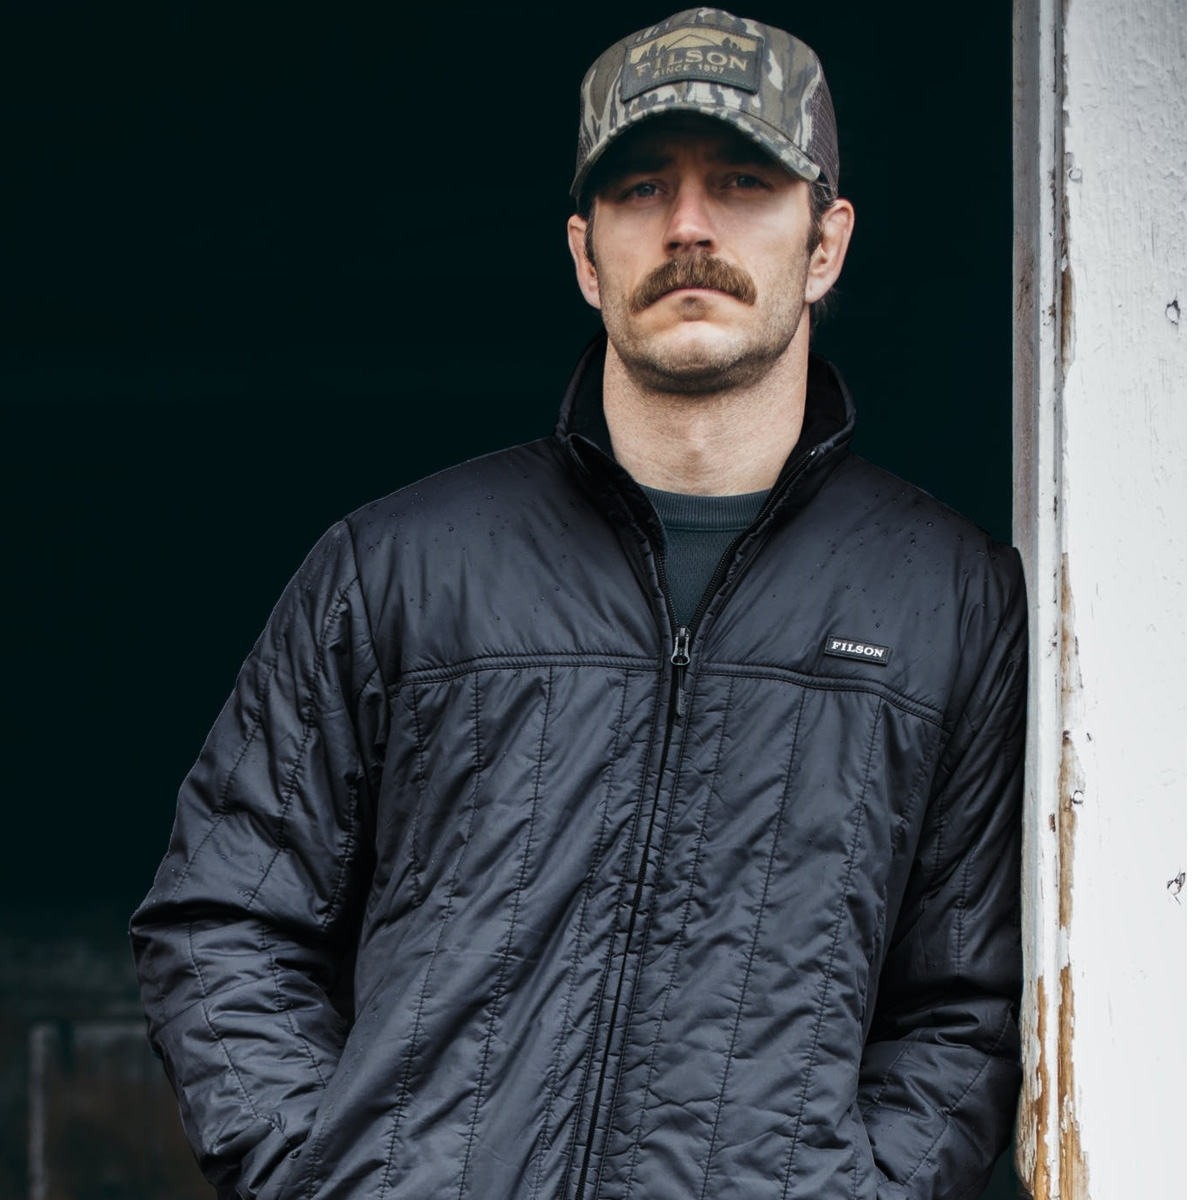 Filson Ultra Light Jacket Black, perfect as an outer layer or underneath a heavy jacket for warmth in extreme cold